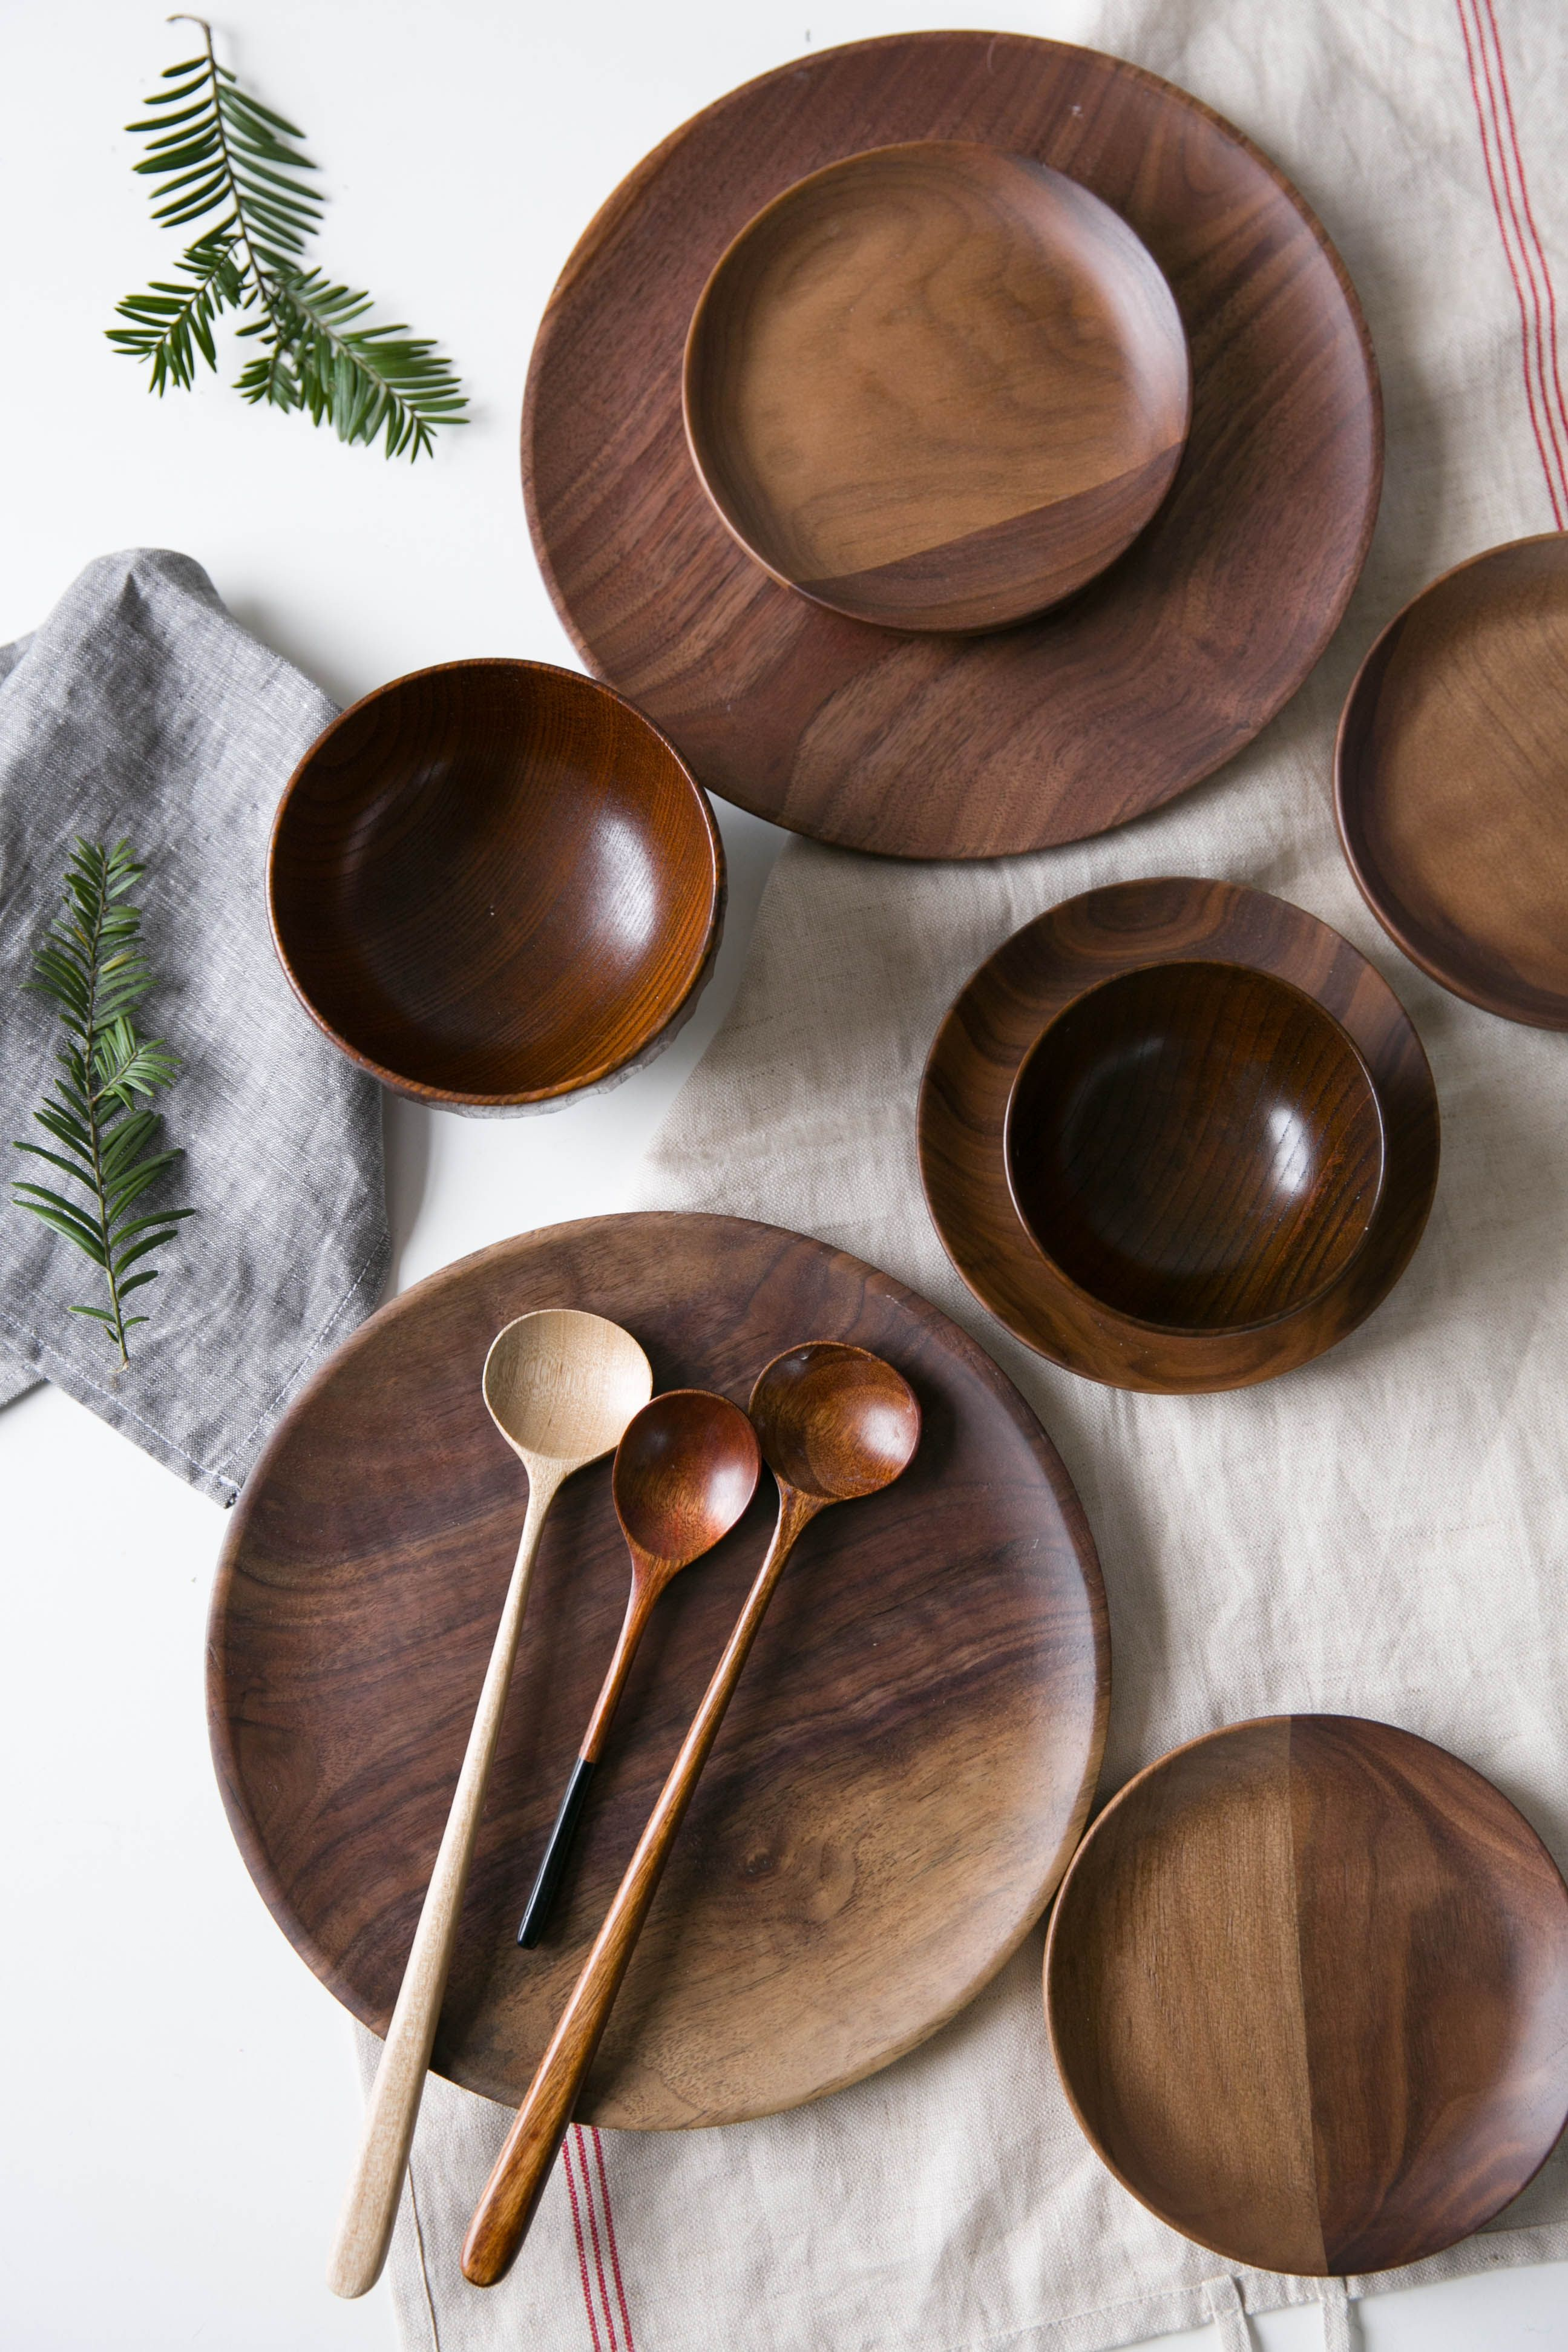 wooden dinner sets  Wood kitchen tool, Kitchen utensil decor